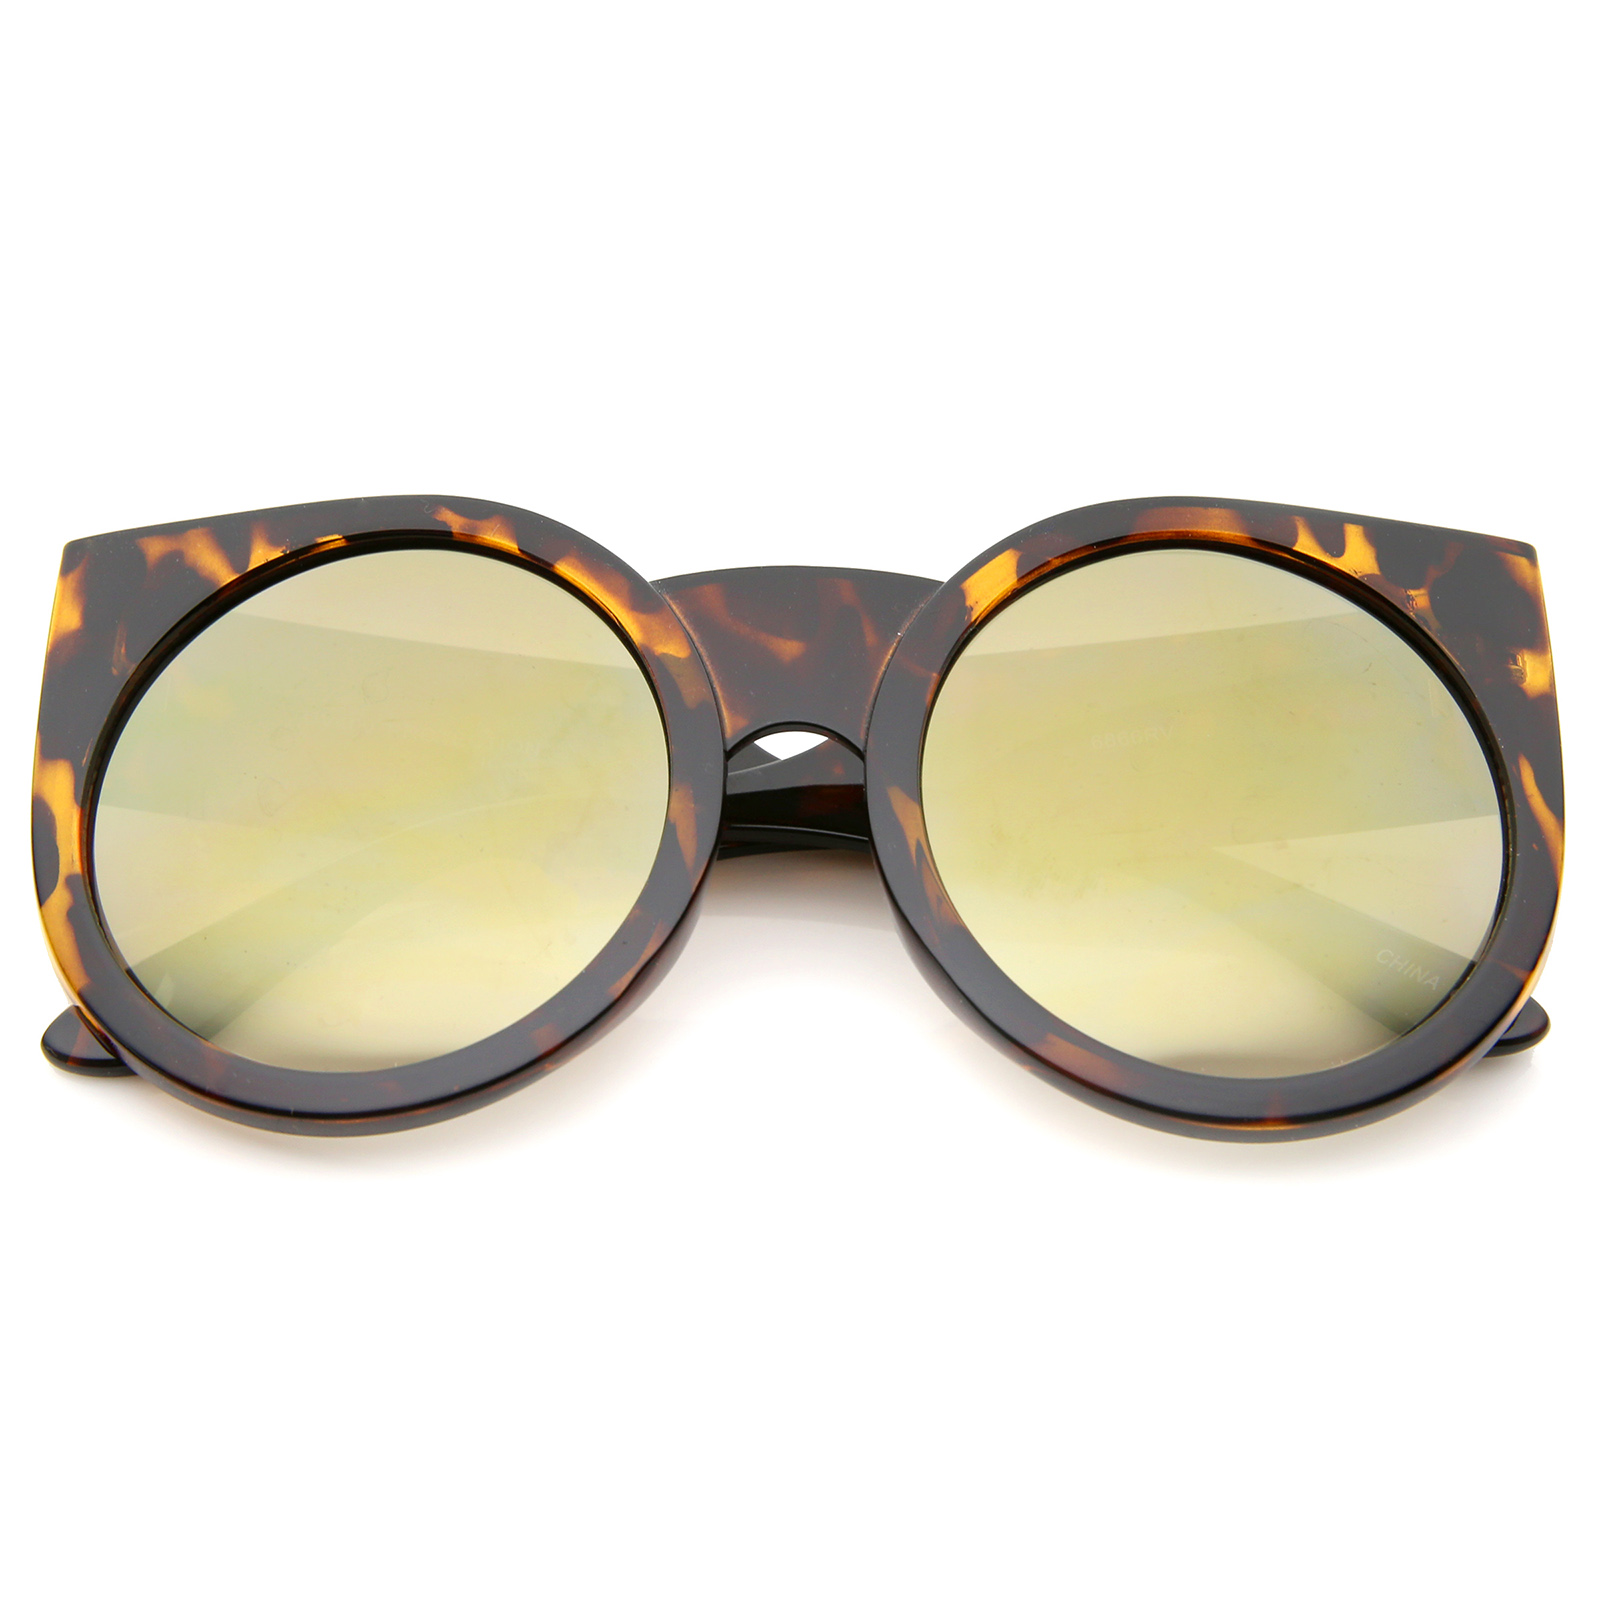 sunglass.LA Womens Thick Frame Color Mirror Lens Round Cat ...